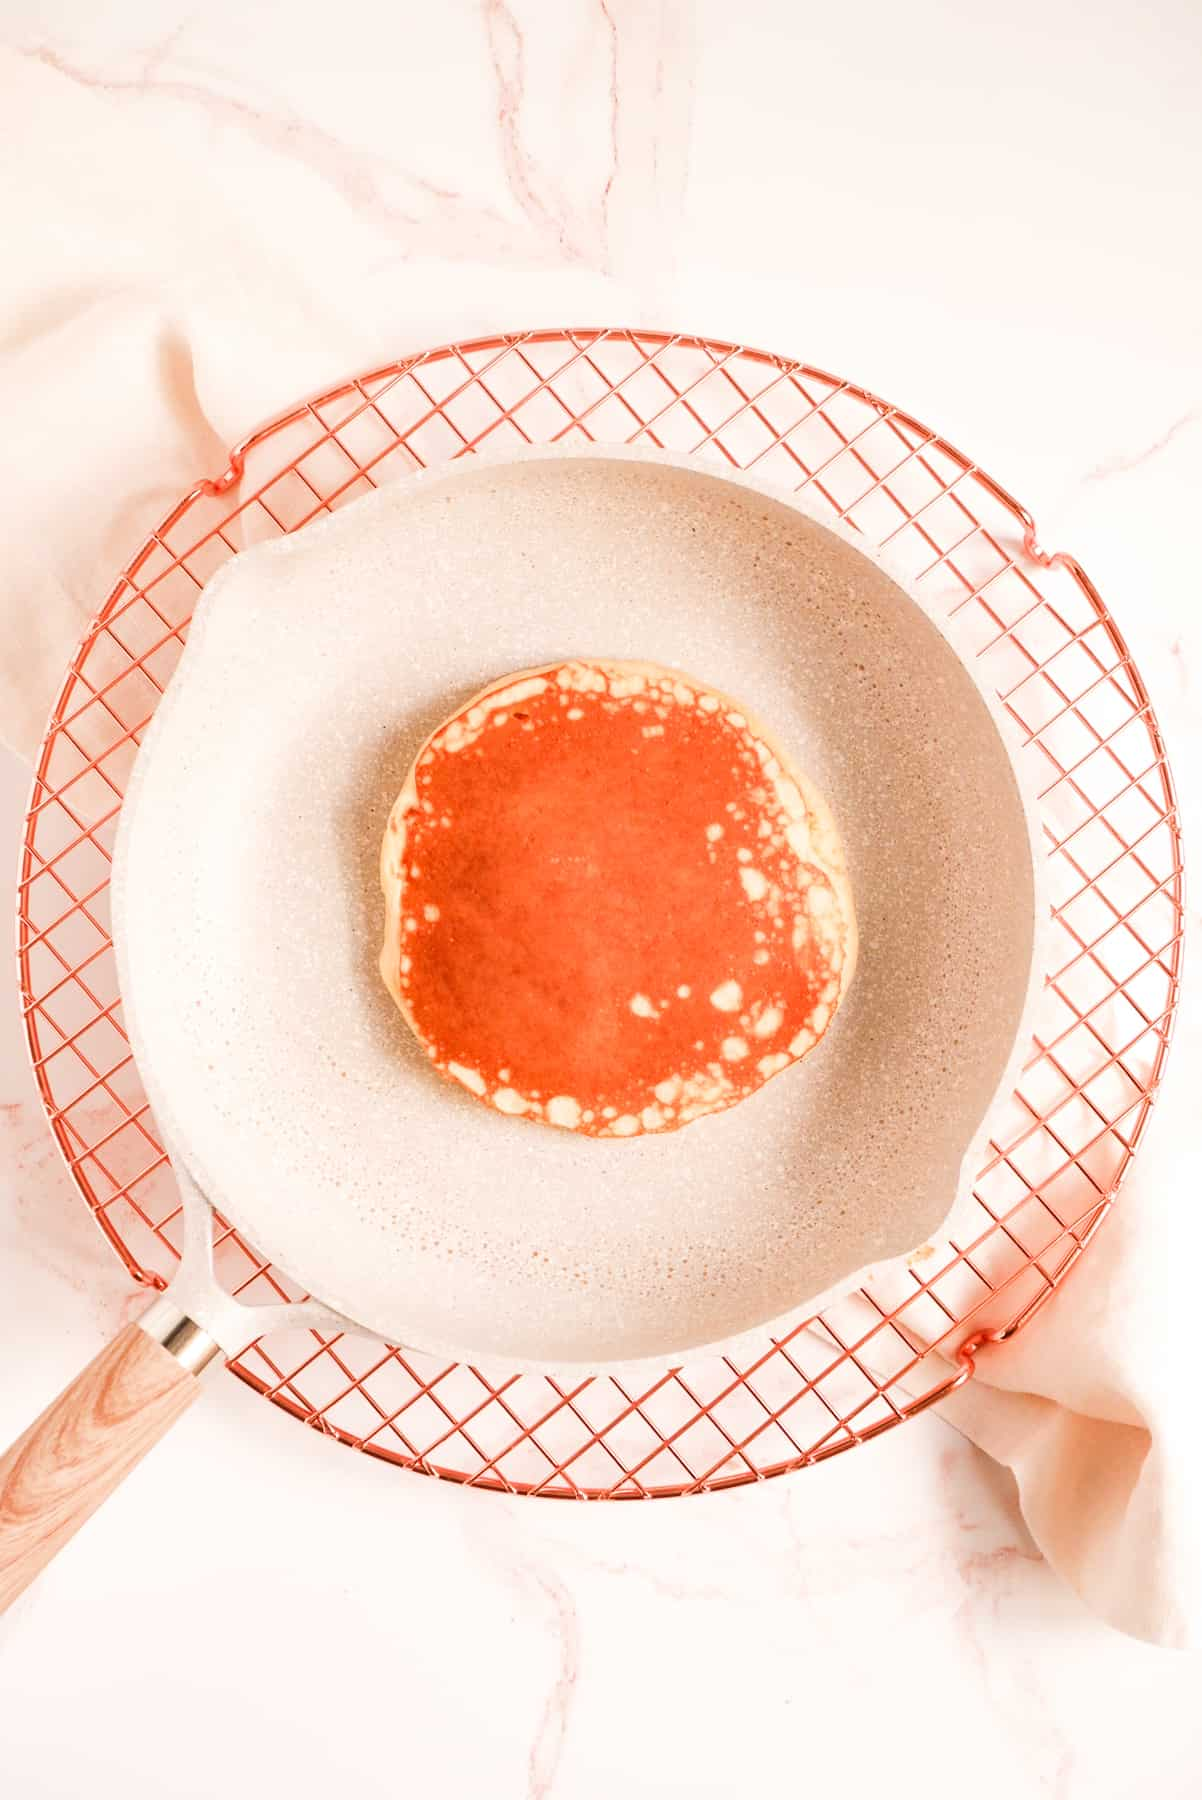 a buttermilk pancake cooking in a pan on a wire rack